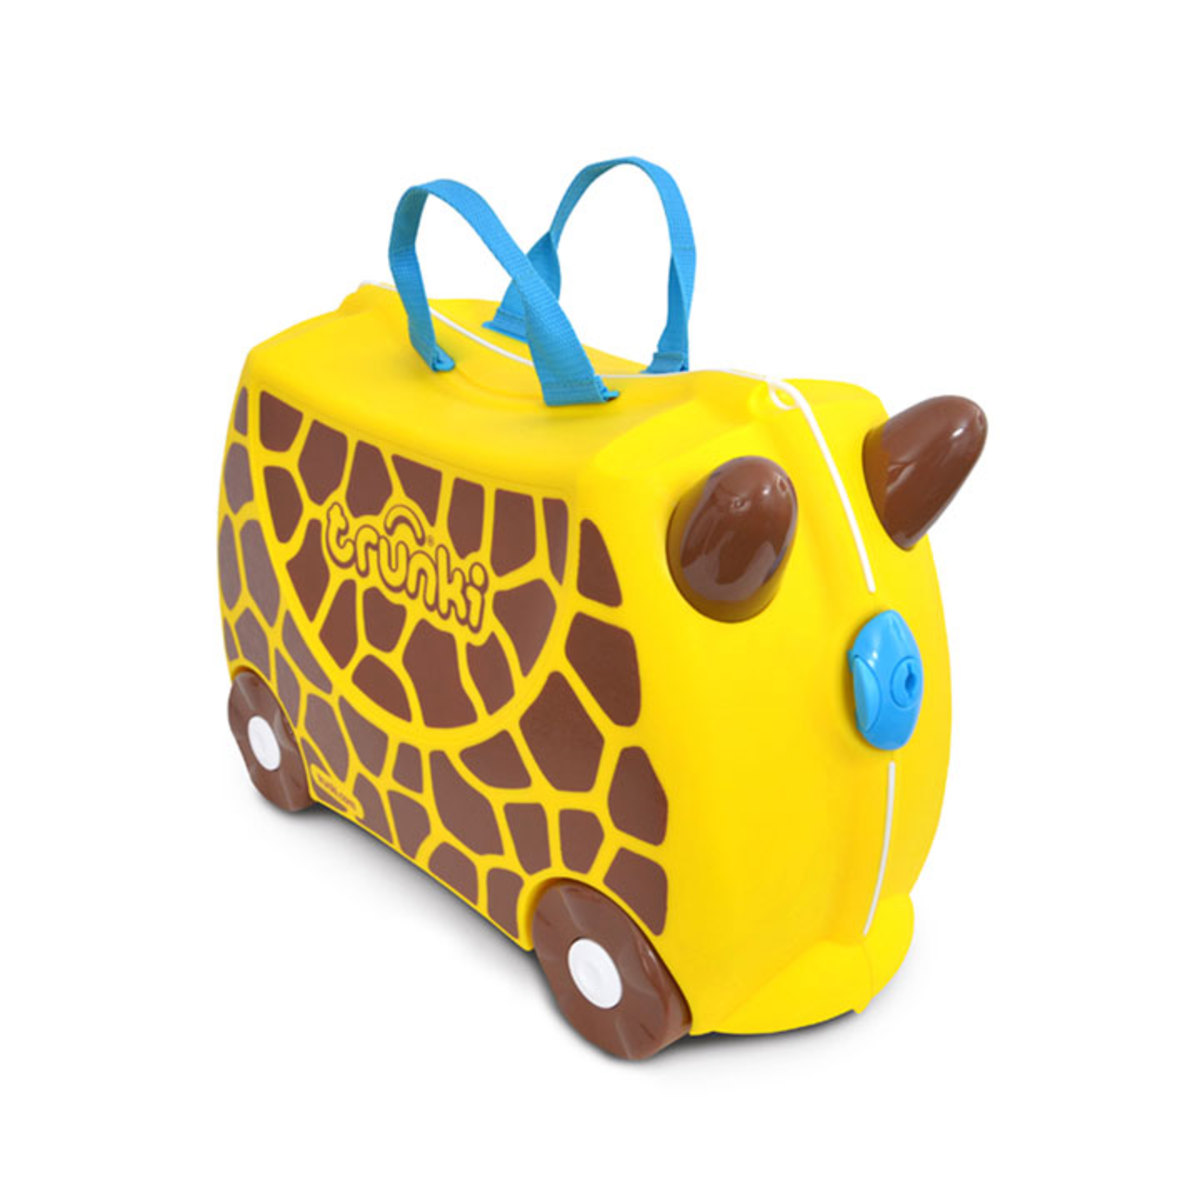 trunki valise ride on girafe gerry bagagerie enfant trunki sur l 39 armoire de b b. Black Bedroom Furniture Sets. Home Design Ideas